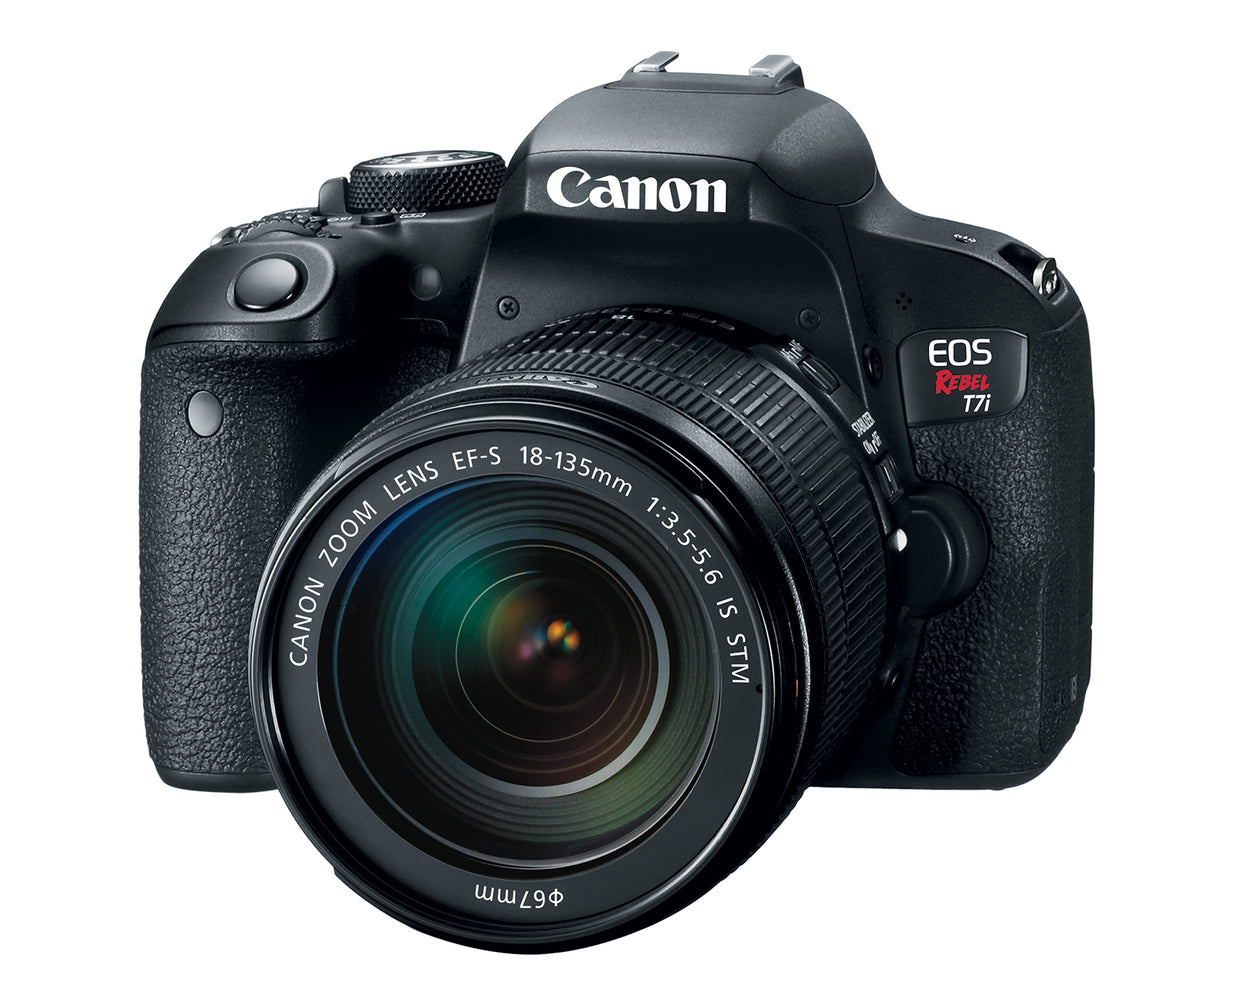 Canon EOS T7i Rebel with 18-135mm f/4-5.6 IS STM Lens Kit